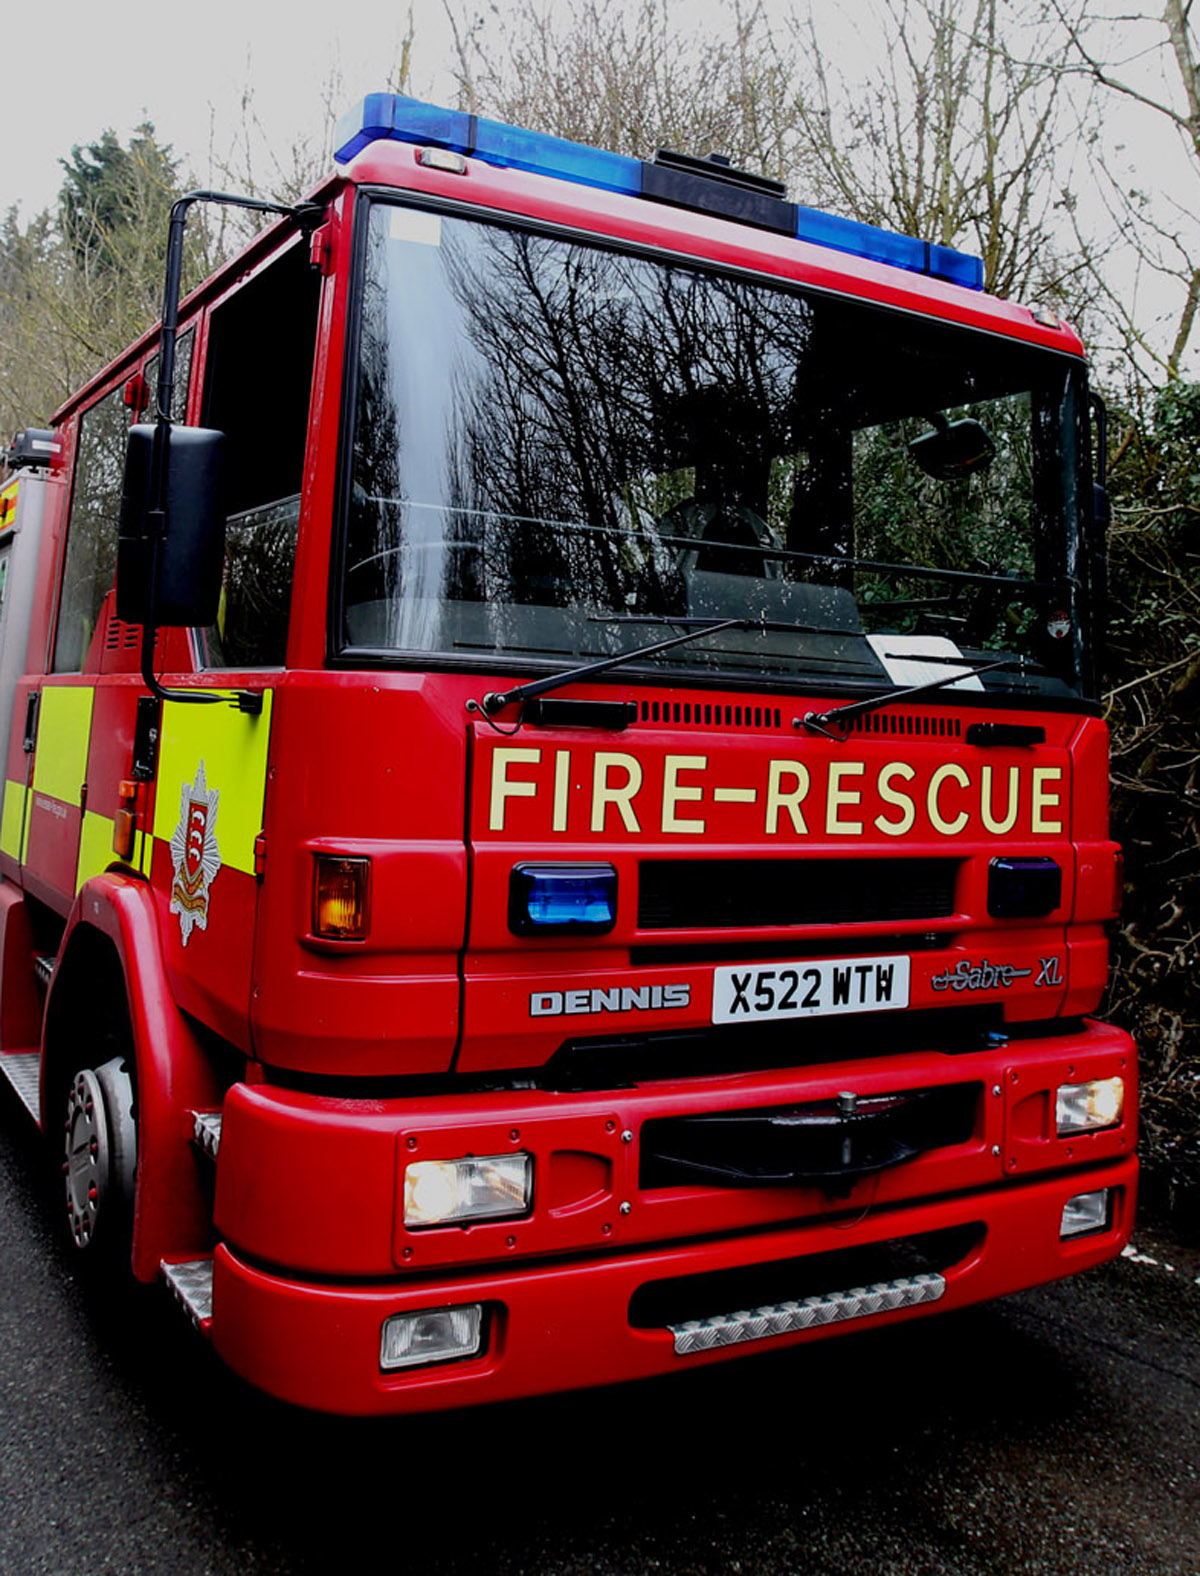 Firefighters tackle house fire in Hullbridge